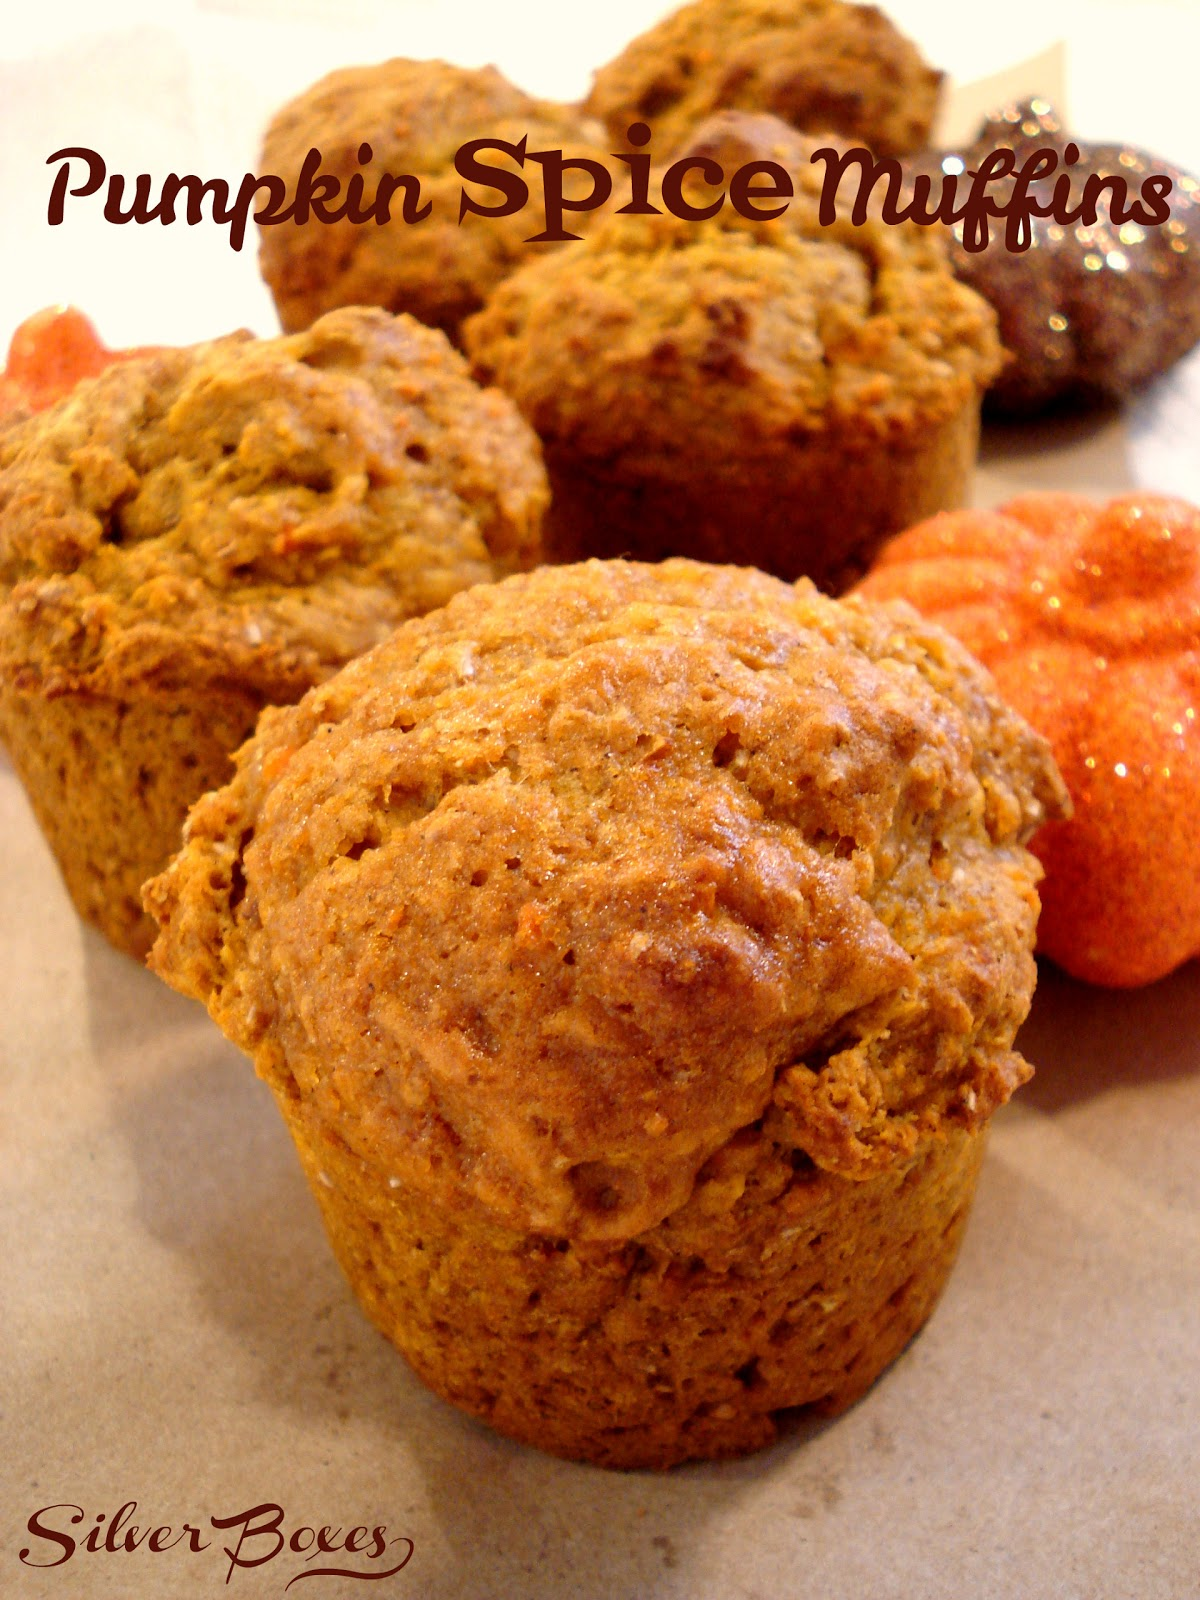 Silver Boxes: Pumpkin Spice Muffins - Delicious & Low Fat!